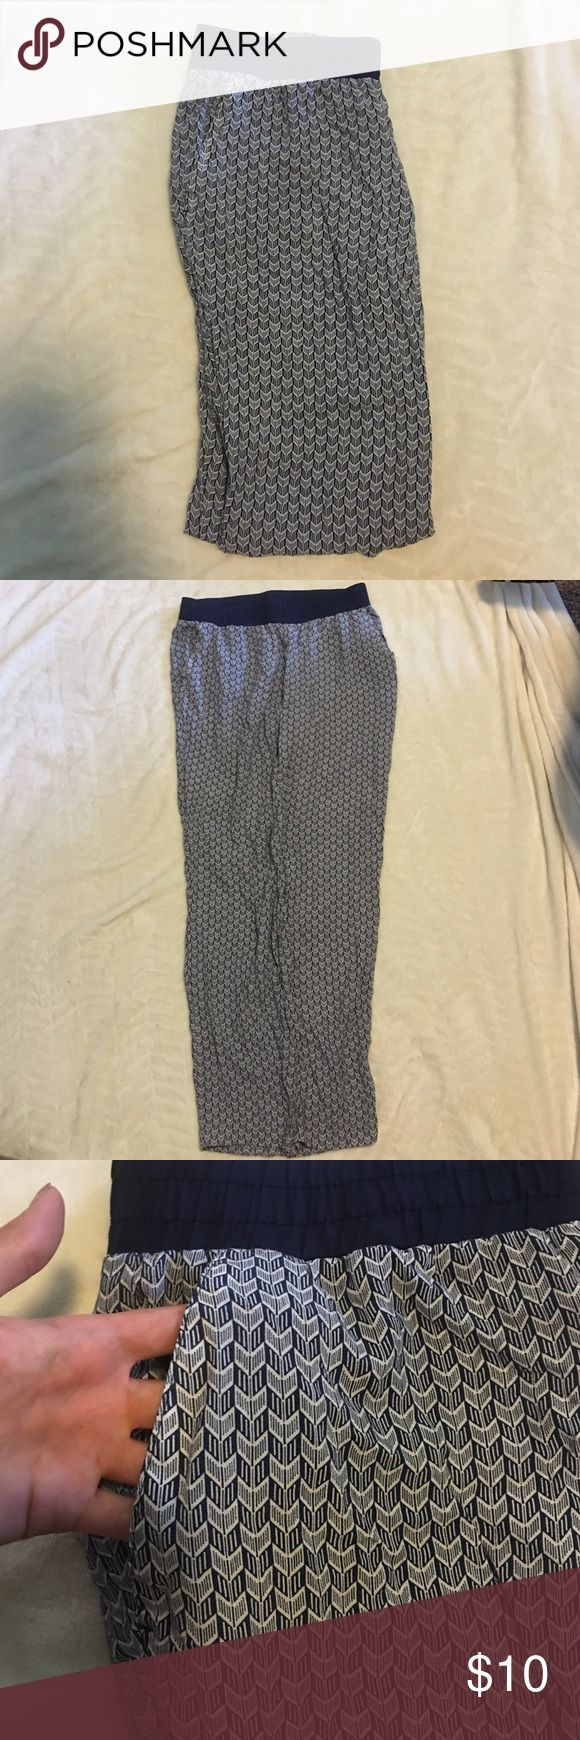 HM high wasted pants Loose fitted high wasted patterned pants | pockets H&M Pants Straight Leg